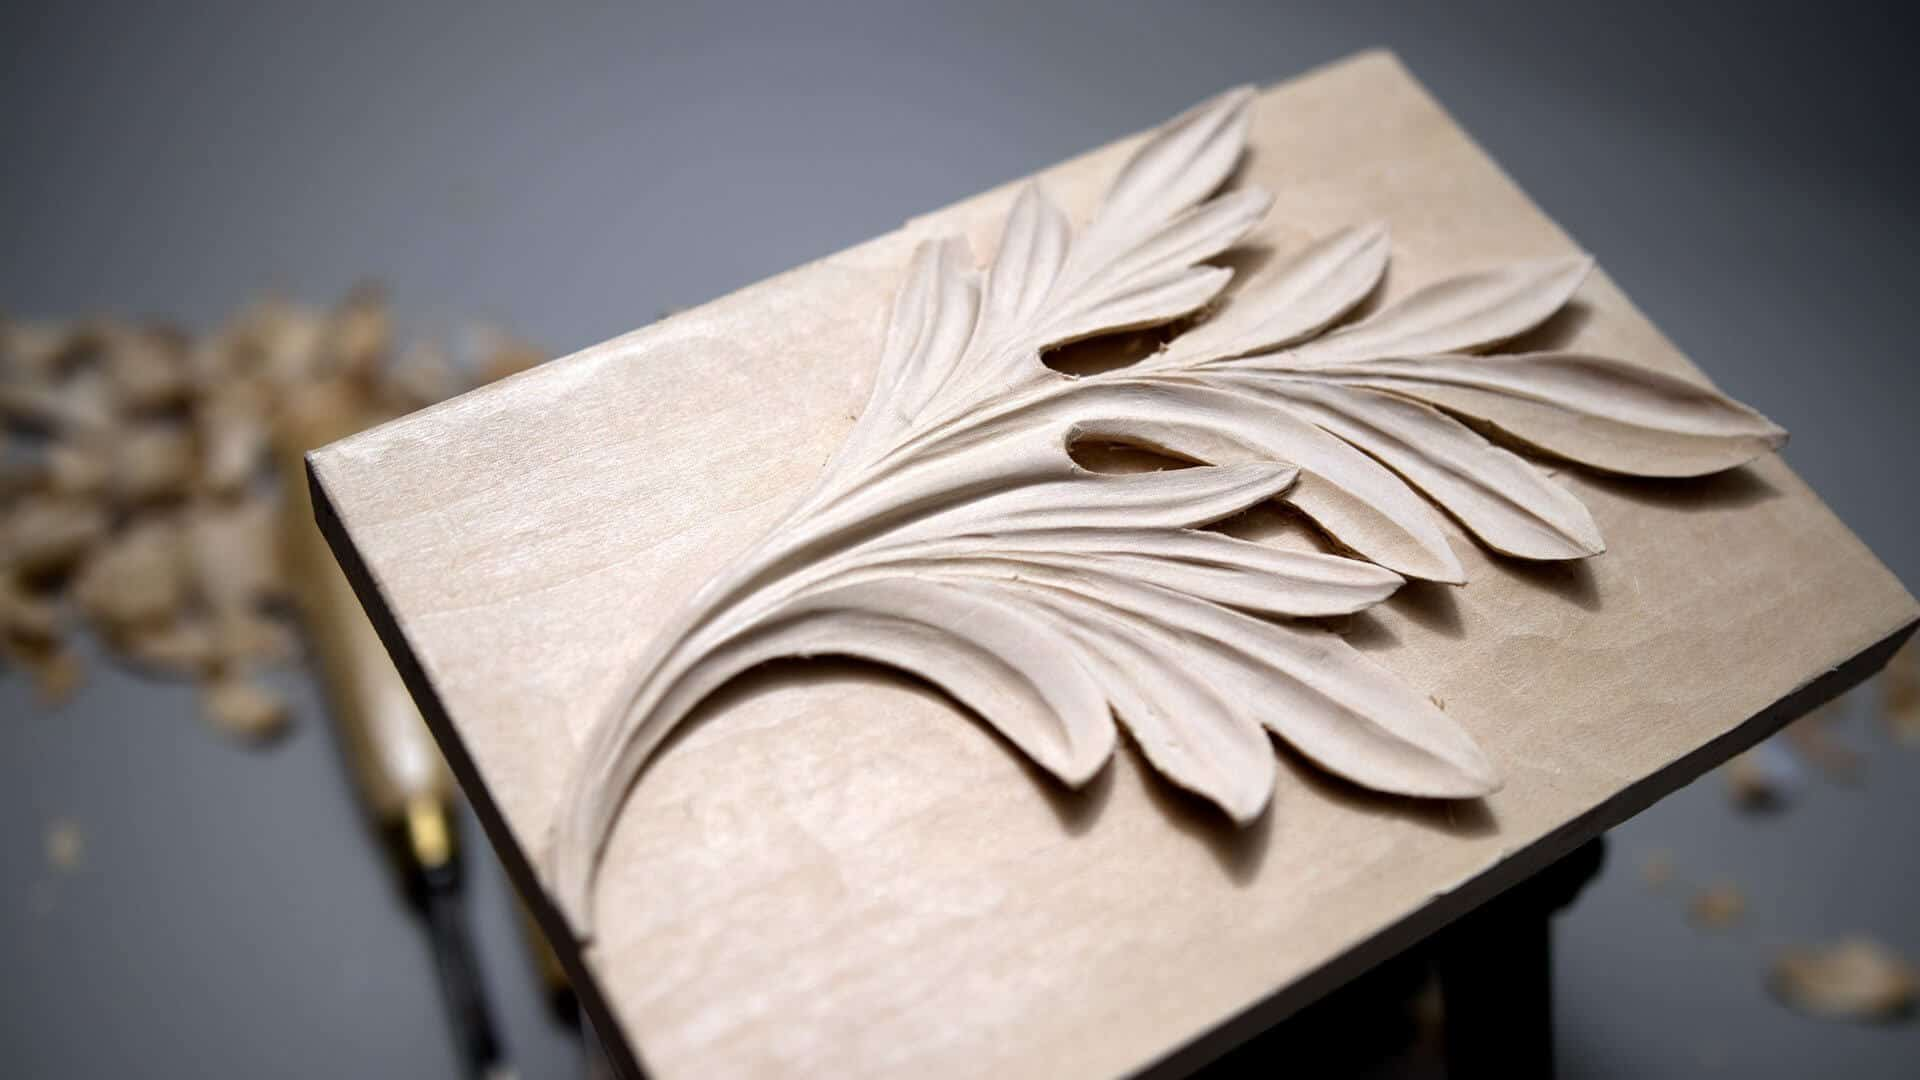 forms of Acanthus Wood Carving, Learn to Carve Greek Acanthus Leaf, acanthus leaves symbolism, acanthus leaves architecture definition, acanthus flower symbolism, acanthus leaves images, acanthus leaves patterns, acanthus leaf drawing, acanthus leaf carving, carving an greek acanthus leaf carving an acanthus leaf acanthus leaf carvings, acanthus leaf, acanthus leaf carving, acanthus leaf meaning, acanthus leaf design, acanthus leaf drawing, acanthus leaf pattern, acanthus leaf hose pot, acanthus leaf chandelier, acanthus leaf crown molding, acanthus leaf lamp, acanthus leaf stencil, acanthus leaf ceiling medallion, acanthus leaf standing candelabra, acanthus leaf table base, acanthus leaf mouldings, acanthus leaf drawing tutorial, acanthus leaf corbels, acanthus leaf, acanthus leaf wallpaper, acanthus leaf carving pattern, acanthus leaf mirror, acanthus leaf architecture, acanthus leaf applique, acanthus leaf artifact table lamp, acanthus leaf art, acanthus leaf artifact lamp, acanthus leaf architecture definition, acanthus leaf area rug, acanthus leaf wood applique, acanthus leaf clip art, acanthus leaf greek architecture, acanthus mollis leaf arrangement, attica acanthus leaf crown moulding, attica acanthus leaf ceiling medallion, attica acanthus leaf crown molding, antique acanthus leaf, acanthus leaf border, acanthus leaf bed, acanthus leaf bookends, acanthus leaf bird bath, acanthus leaf bowl, acanthus leaf brushes photoshop, acanthus leaf bracket, acanthus leaf base, acanthus leaf wallpaper border, acanthus leaf decorative bowl, bronze acanthus leaf console table acanthus leaf capital, acanthus leaf ceiling rose, acanthus leaf coving, acanthus leaf cornice, acanthus leaf carving design, acanthus leaf coffee table, acanthus leaf cutter, acanthus leaf crown moulding, acanthus leaf collection, acanthus leaf column, acanthus leaf corinthian, acanthus leaf clock, acanthus leaf corner post, acanthus leaf definition, acanthus leaf detail, acanthus leaf dado rail, acanthus leaf motif doric, lenox acanthus leaf dish, acanthus leaf wall decor, acanthus leaf mold cake decorating, acanthus leaf engraving, acanthus mollis leaf extract, acanthus leaf fabric, acanthus leaf frame, acanthus leaf furniture, acanthus leaf fireplace, acanthus leaf fondant mold, acanthus leaf finial, acanthus leaf font, acanthus leaf floor lamp, acanthus leaf filigree, acanthus leaf frieze, acanthus leaves fabric, acanthus leaves flourish, acanthus leaf pot feet, acanthus leaf upholstery fabric, acanthus leaf light fixture, acanthus leaves vector free, william morris acanthus leaf fabric, forged acanthus leaf, acanthus leaf gumpaste mold, acanthus leaf graphic, acanthus leaves greek architecture, gg acanthus leaf collection, acanthus leaf history, acanthus leaf hose holder, acanthus leaf hardware, acanthus leaf handle, acanthus leaves heraldry, acanthus leaf candle holder, acanthus leaves restoration hardware, history acanthus leaf design, acanthus leaf images, acanthus leaf in architecture, acanthus leaf illustration, acanthus leaf island leg, imperial acanthus leaf, acanthus leaf jewelry, acanthus leaf knitting pattern, acanthus leaf knob, acanthus leaf table lamp, acanthus leaf ten light chandelier, acanthus leaves recessed light cap ring, acanthus leaf uplight table torchiere lamp, large acanthus leaf cornice, large acanthus leaf stencil, lenox acanthus leaf vase, large acanthus leaf coving, large acanthus leaf corbel, acanthus leaf motif, acanthus leaf mold, acanthus leaf mold (creative cutters), acanthus leaf medallion, acanthus mollis leaf, acanthus leaf tattoo meaning, acanthus leaf 3d model, acanthus leaf silicone mould, acanthus leaf necklace, acanthus leaf ornament, acanthus leaf onlay, acanthus leaf origin, acanthus oak leaf, acanthus leaf christmas ornament, acanthus leaf plant, acanthus leaf planter, acanthus leaf plaster coving, acanthus leaf painting, acanthus leaf pedestal, acanthus leaf photo, acanthus leaf pendant, acanthus leaf pin, acanthus leaves patterns, acanthus leaves plant, acanthus leaves pictures, acanthus leaves pronunciation, acanthus leaf stencil pattern, carved acanthus leaf panel, acanthus leaf rug, acanthus leaf rosette, acanthus leaf rococo, acanthus leaf ring, acanthus leaves roman, acanthus leaves roman architecture, acanthus leaves rugs, acanthus leaf ceiling ring, acanthus leaf symbolism, acanthus leaf silicone mold, acanthus leaf scroll, acanthus leaf sconce, acanthus leaf spray, acanthus leaf scroll corbel, acanthus leaf side table, acanthus leaf stone, acanthus leaf scarf holder, acanthus leaf silver, acanthus leaf wall shelf, wide acanthus leaf scarf holder, small acanthus leaf coving, small acanthus leaf cornice, acanthus leaf template, acanthus leaf table, acanthus leaf tutorial, acanthus leaf tiles, acanthus leaf wood trim, the acanthus leaf, acanthus leaf tie backs, traduction acanthus leaf, acanthus leaf urn, acanthus leaf urn planter, acanthus leaf vector, acanthus leaf wood carving, acanthus leaf wall sconce, acanthus leaf wood corbels, acanthus leaf wiki, acanthus leaf wall mirror, acanthus leaf wood, acanthus leaf wreath, acanthus leaves william morris, acanthus leaves wallpaper border, wikipedia acanthus leaf, acanthus leaves turning yellow, carving an acanthus leaf, acanthus leaf carvings, meaning of acanthus leaf, floral and acanthus leaf design, acanthus leaves embroidery designs, acanthus leaf designs, drawing an acanthus leaf, acanthus leaf carvings, meaning of acanthus leaf, floral and acanthus leaf design, acanthus leaves embroidery designs, acanthus leaf designs, drawing an acanthus leaf, drawing the acanthus leaf, 18th c. acanthus leaf chandelier 36, 18th c. acanthus leaf chandelier, 18th century acanthus leaf chandelier, acanthus leaves stencils, acanthus leaf moldings, acanthus leaves moulding, acanthus leaf carving patterns, acanthus leaves architecture definition, acanthus leaves art, acanthus leaves clip art, acanthus leaves in greek architecture, acanthus mollis leaf shape, column capital with acanthus leaf decoration, acanthus leaves on capital, dessau home bronze acanthus leaf iron coffee table with beveled glass, acanthus leaves column, acanthus leaves on columns, acanthus leaves corinthian, acanthus leaves definition, acanthus leaves engraving, acanthus leaves symbolism, acanthus motif, acanthus leaves images, acanthus leaves definition, acanthus flower symbolism, acanthus ornament, acanthus leaves patterns,